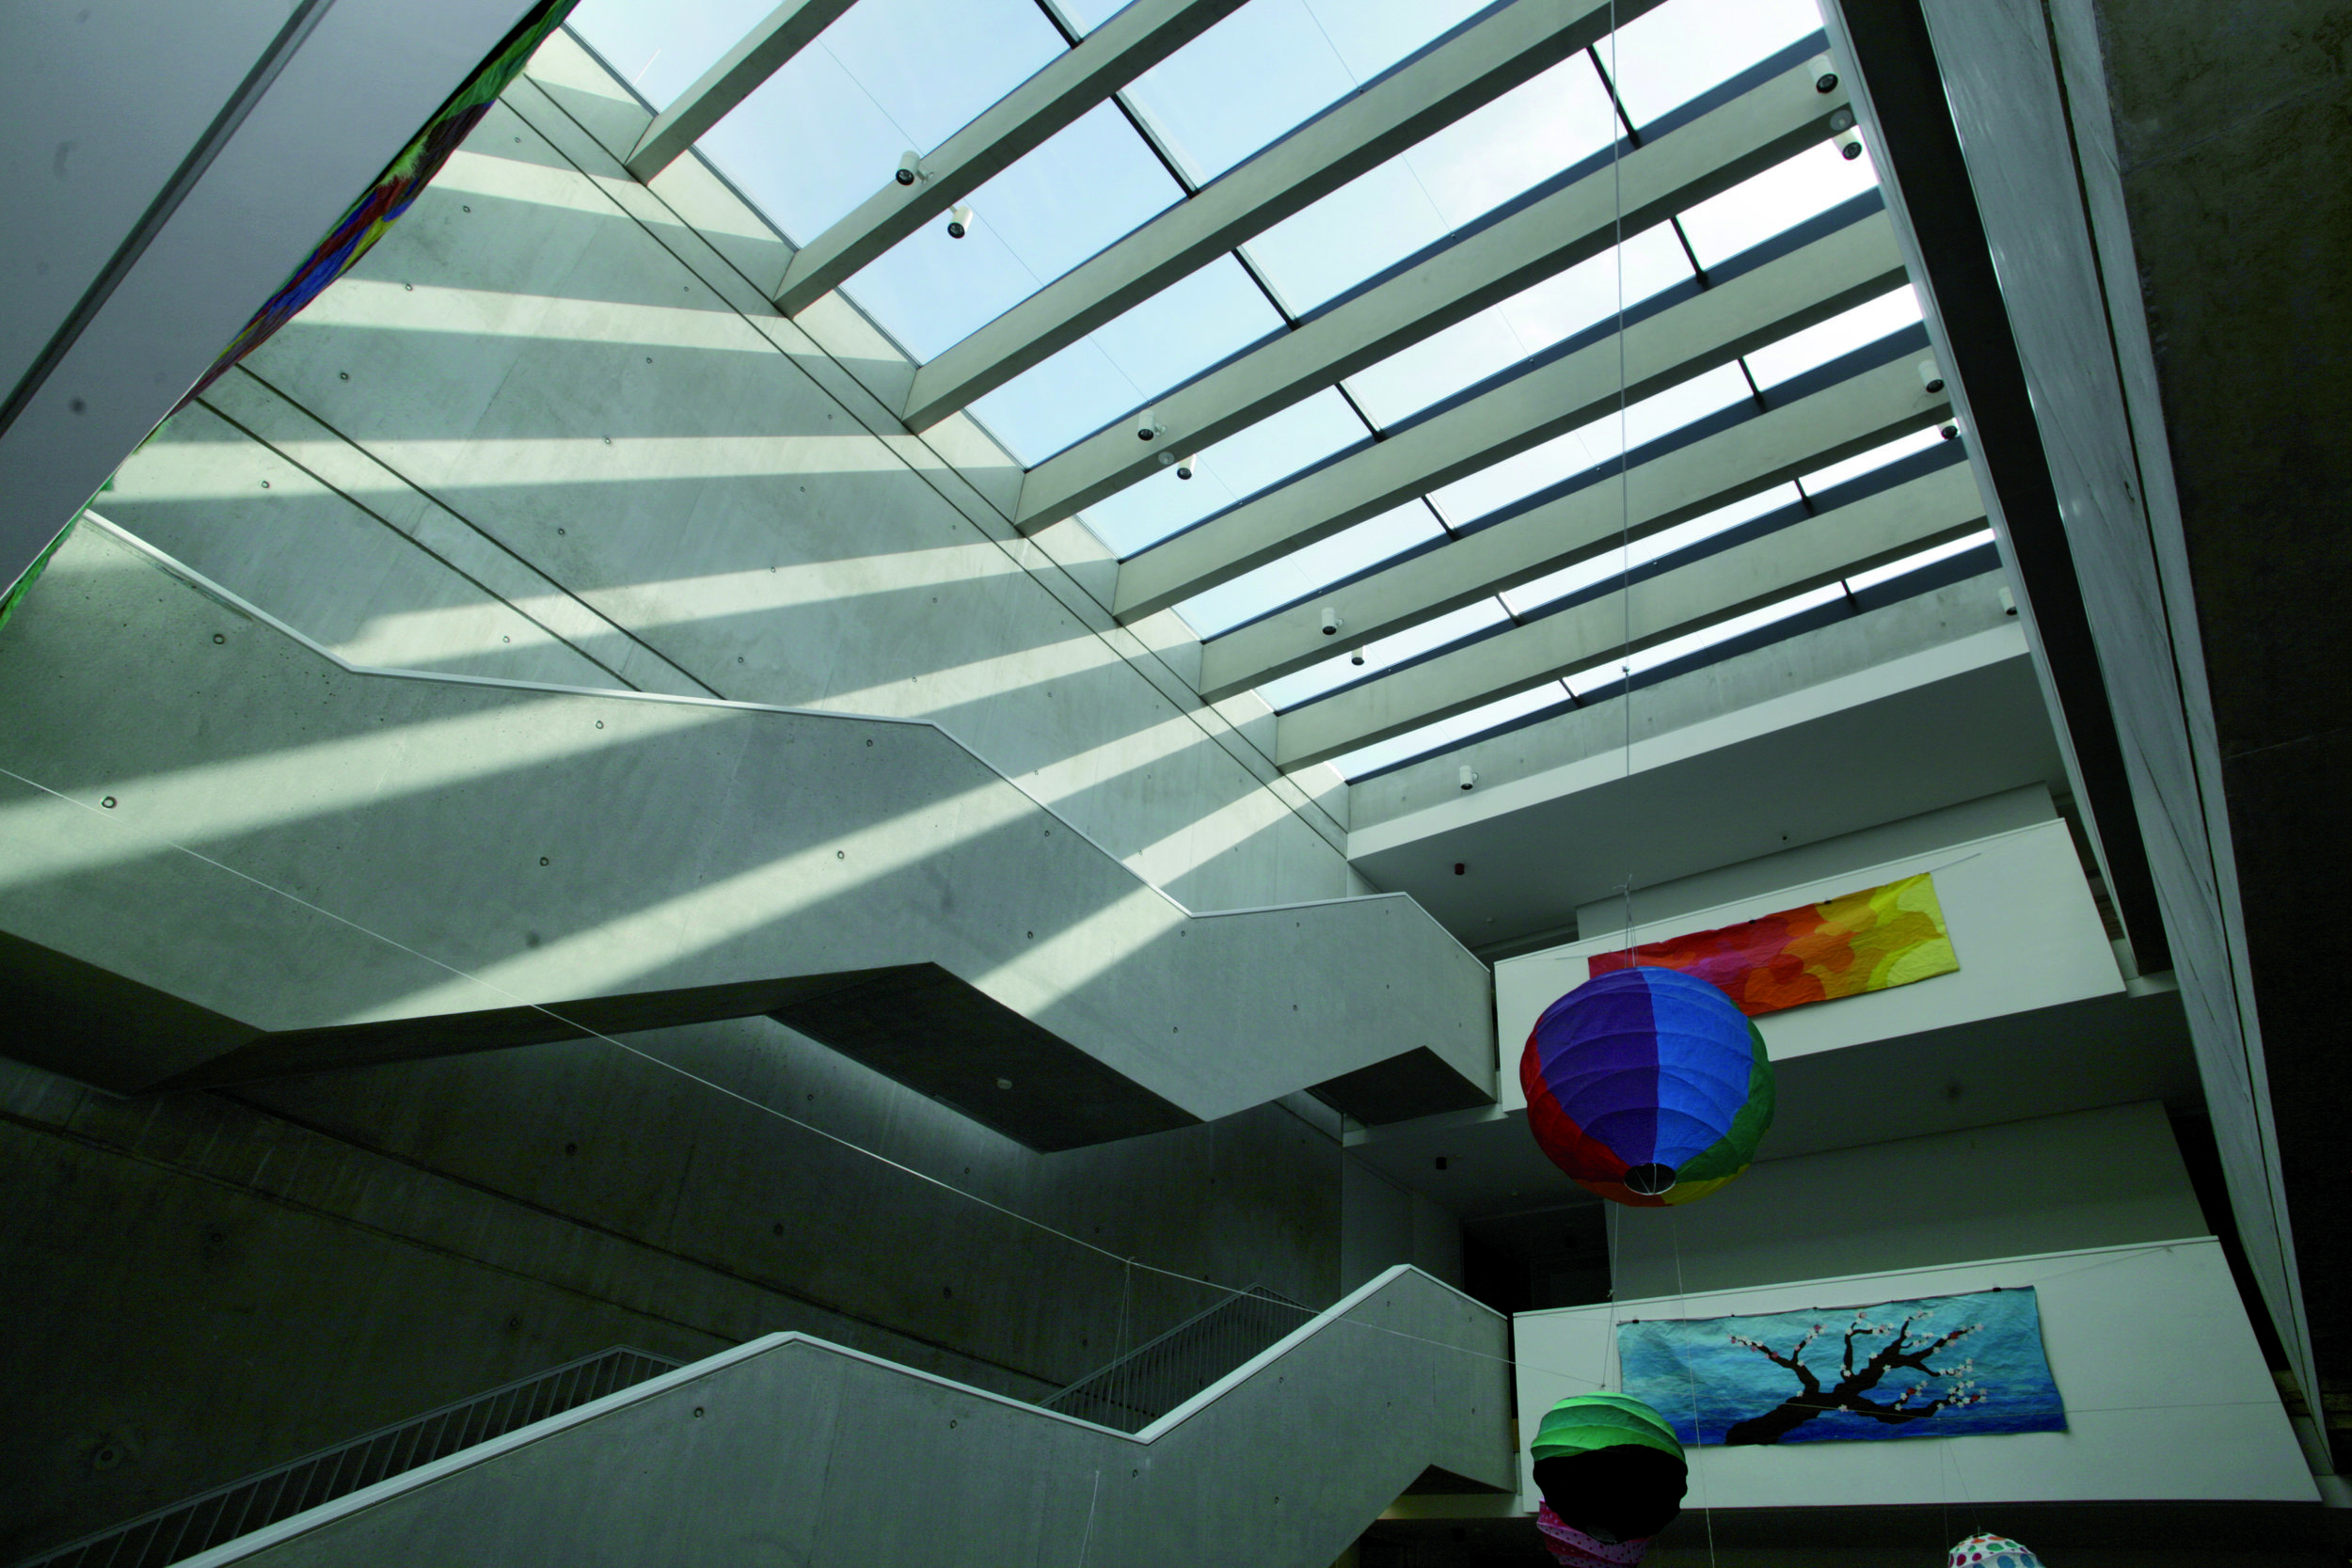 Play between light and structure enhance aesthetics of interior circulation space and make using stairs more attractive.